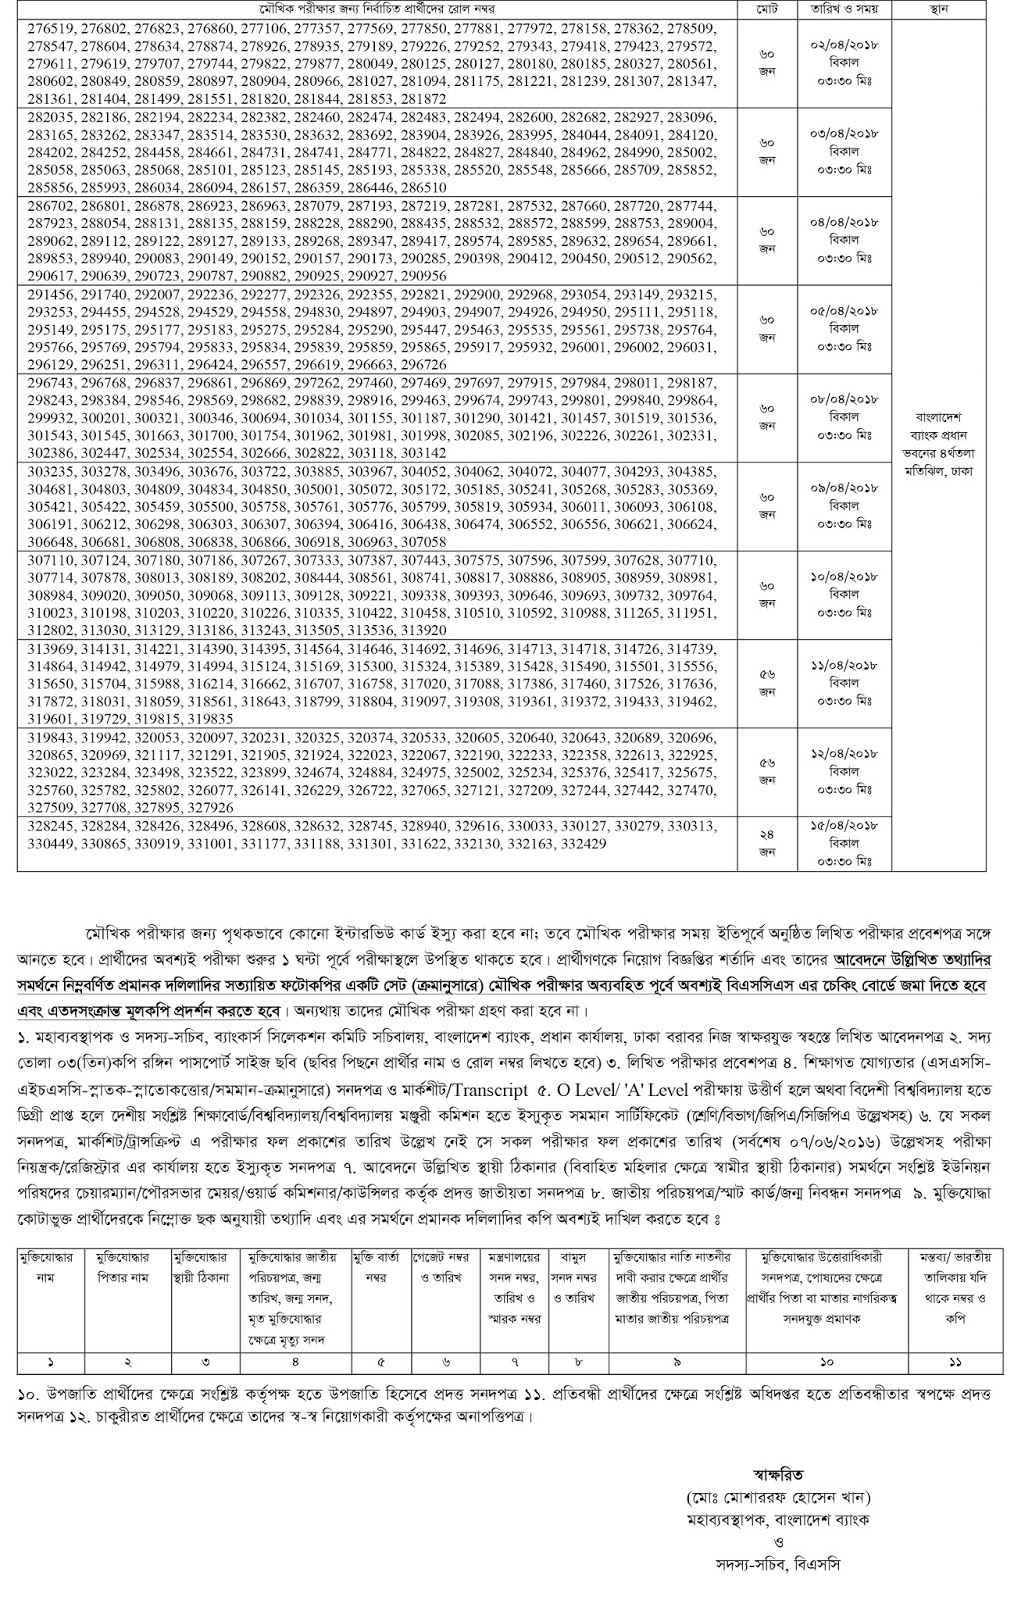 Bangladesh Krishi Bank (BKB) Officer Written Exam Pass Total 2656 Candidate. Bangladesh Krishi Bank (BKB) Officer Result, Viva Test Date and Time Schedule